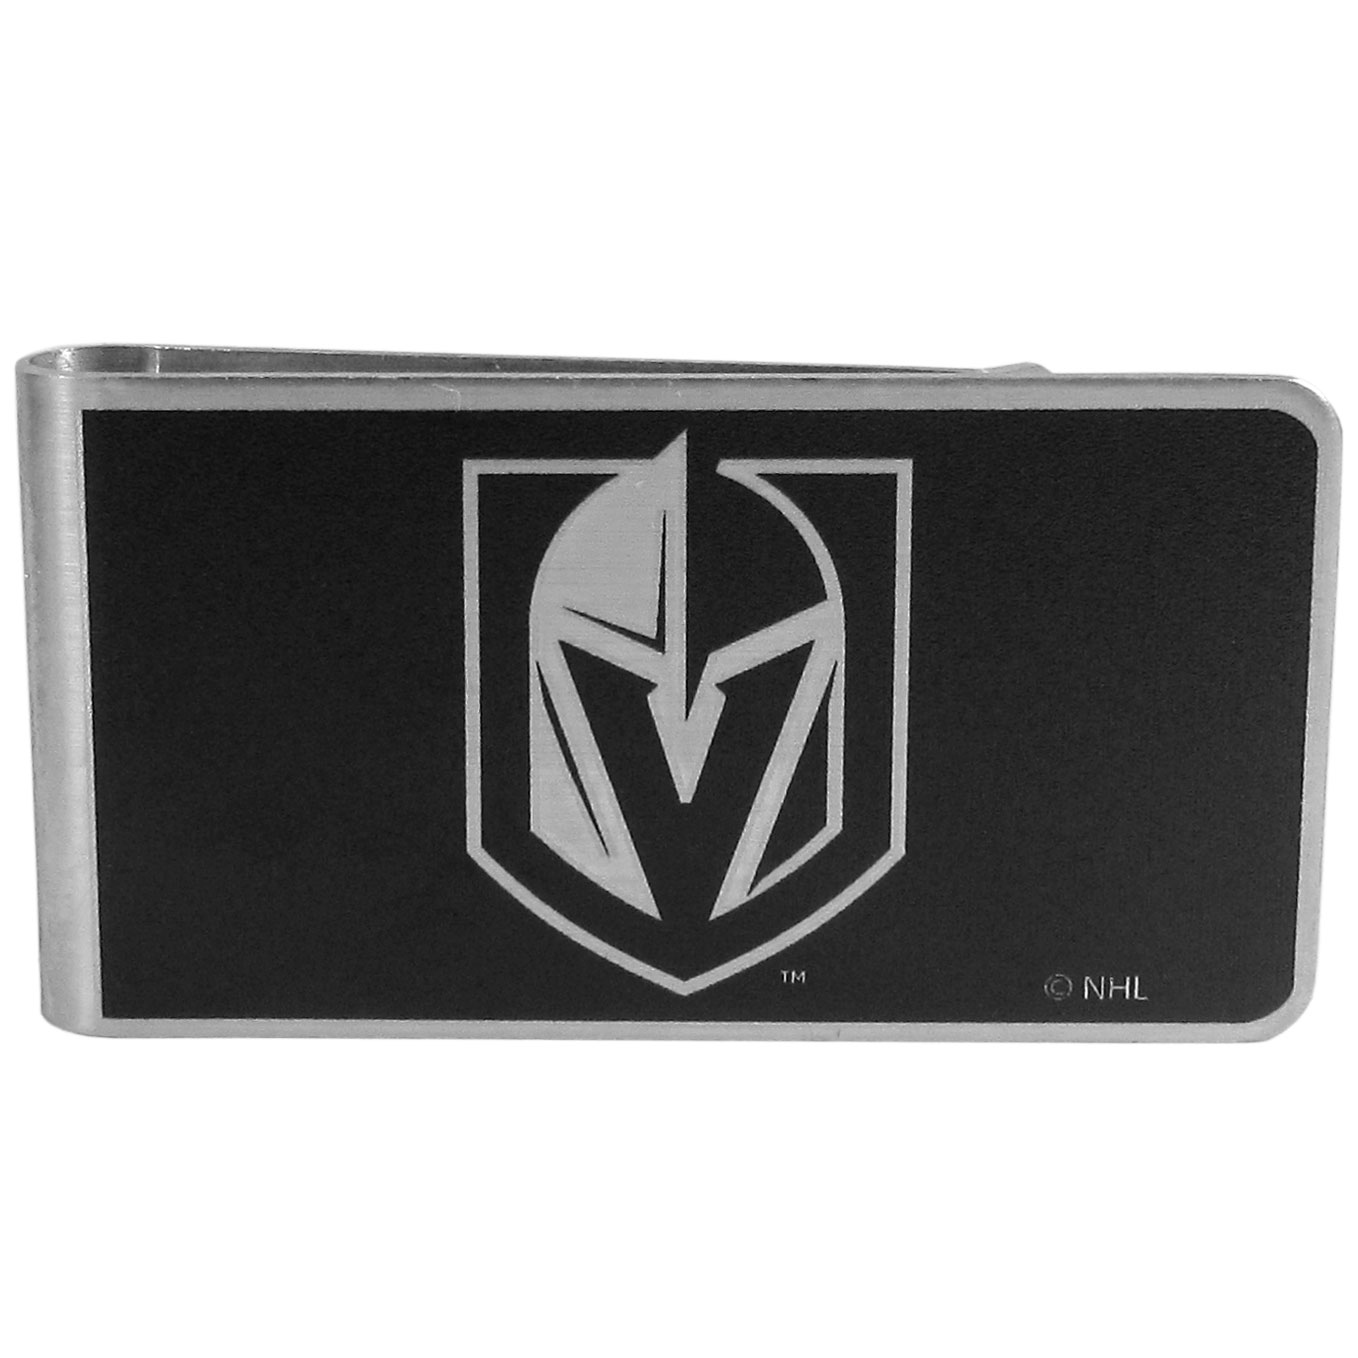 Las Vegas Golden Knights® Black and Steel Money Clip - Our monochromatic steel money clips have a classic style and superior quality. The strong, steel clip has a black overlay of the Las Vegas Golden Knights® logo over the brushed metal finish creating a stylish men's fashion accessory that would make any fan proud.